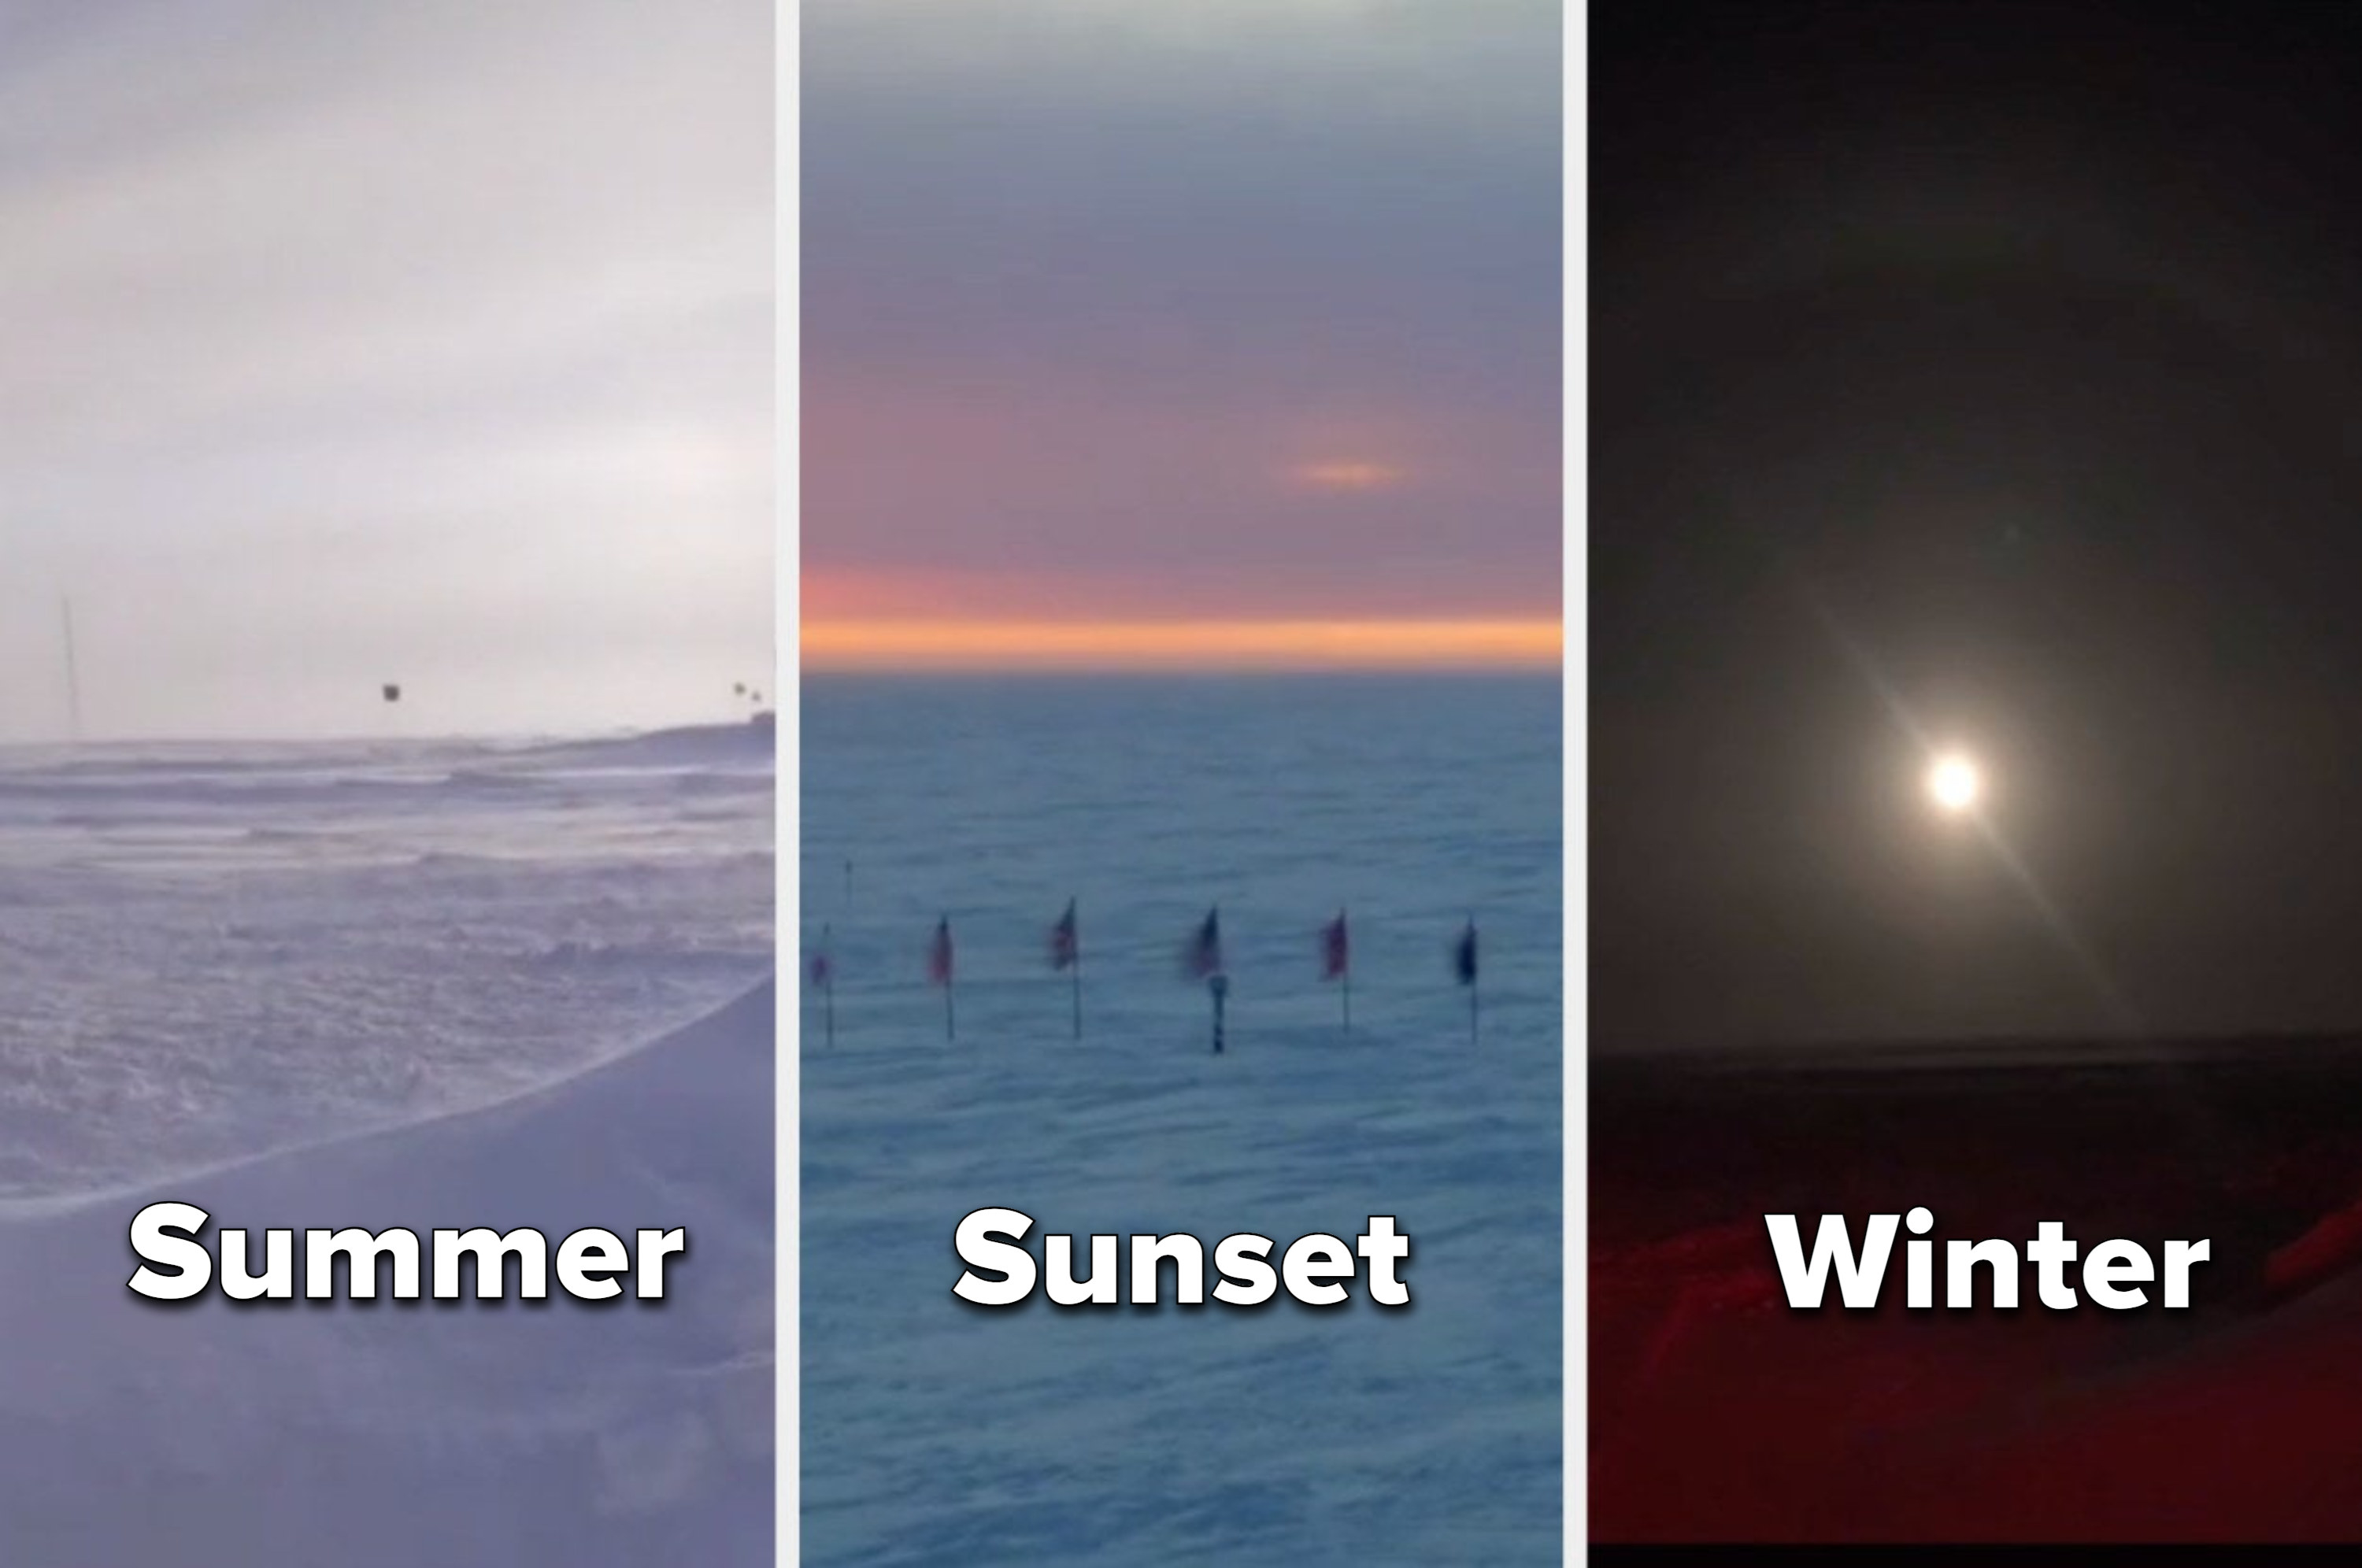 pictures of it light in summer, half dark at sunset, and pitch black in winter